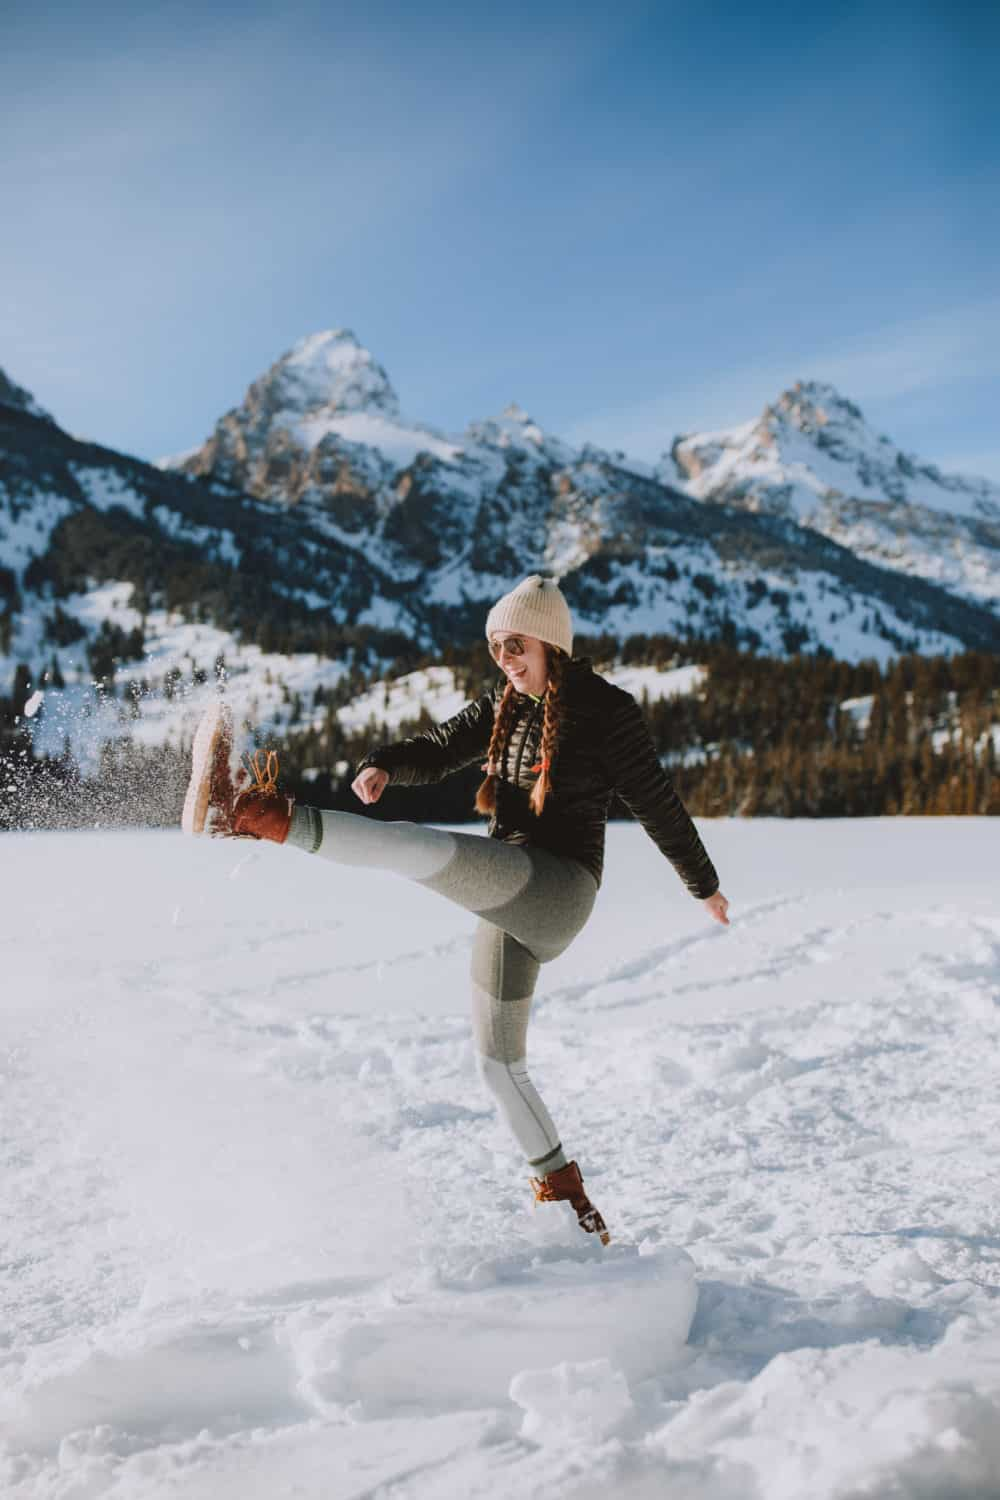 Emily Mandagie kicking snow at Taggart Lake Trail in Grand Teton National Park - TheMandagies.com